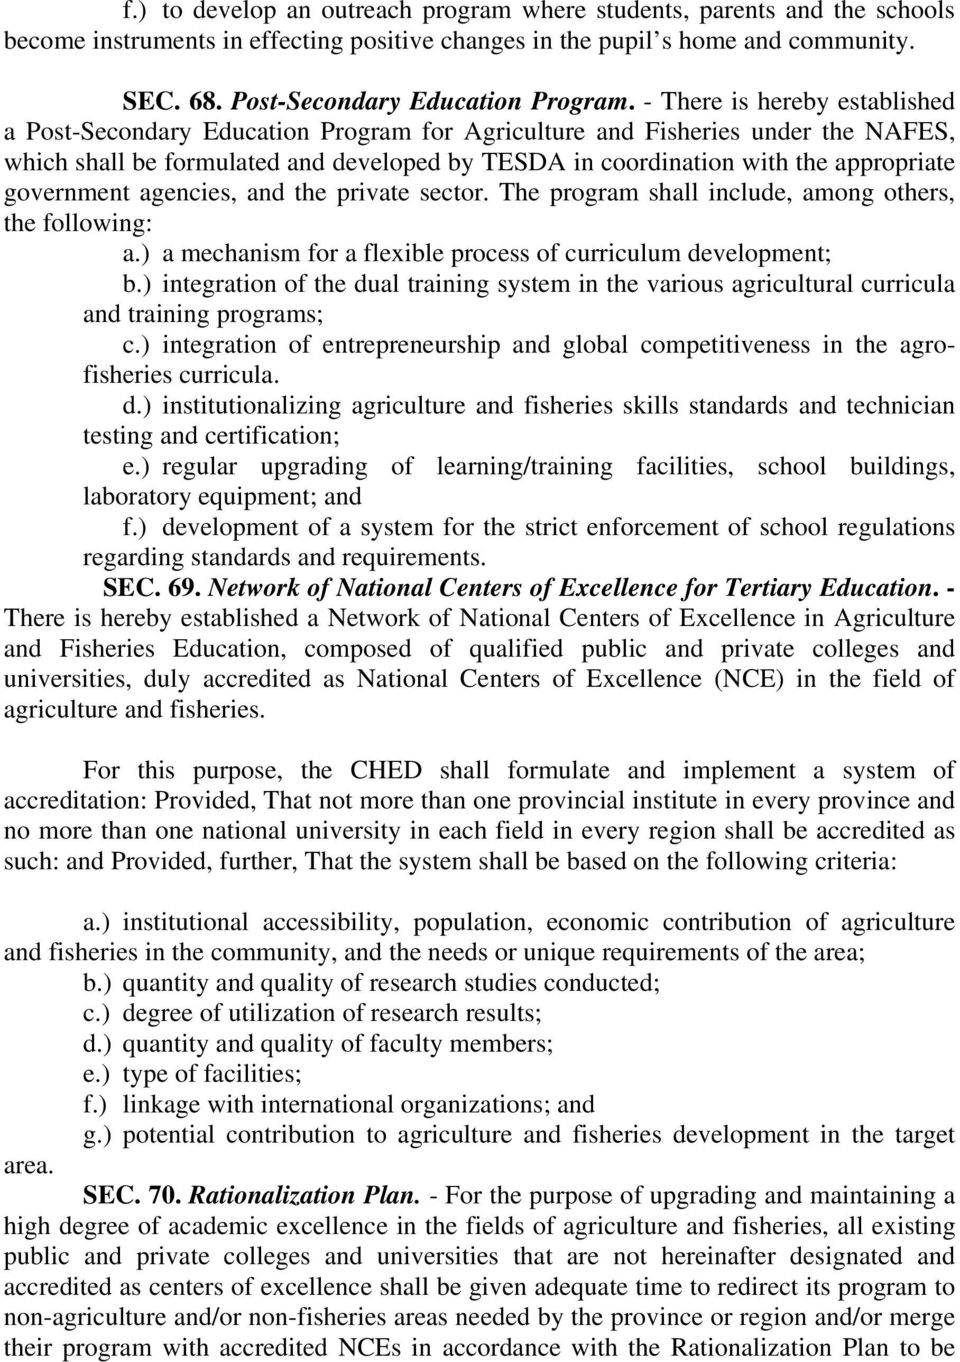 - There is hereby established a Post-Secondary Education Program for Agriculture and Fisheries under the NAFES, which shall be formulated and developed by TESDA in coordination with the appropriate